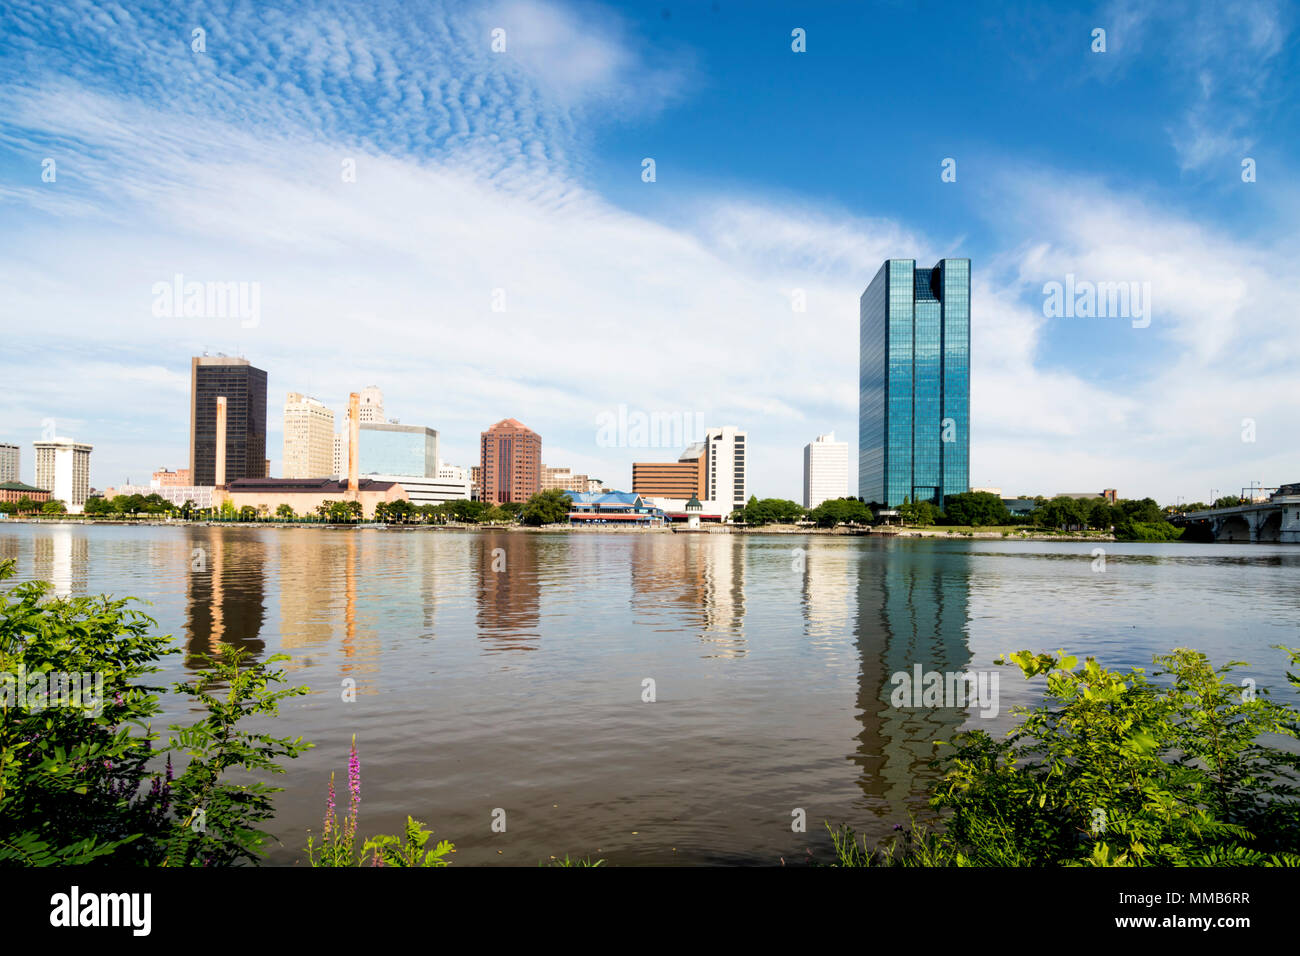 A panoramic view of downtown Toledo Ohio's skyline from across the  Maumee River.  A beautiful  blue sky with white clouds for a backdrop. Stock Photo